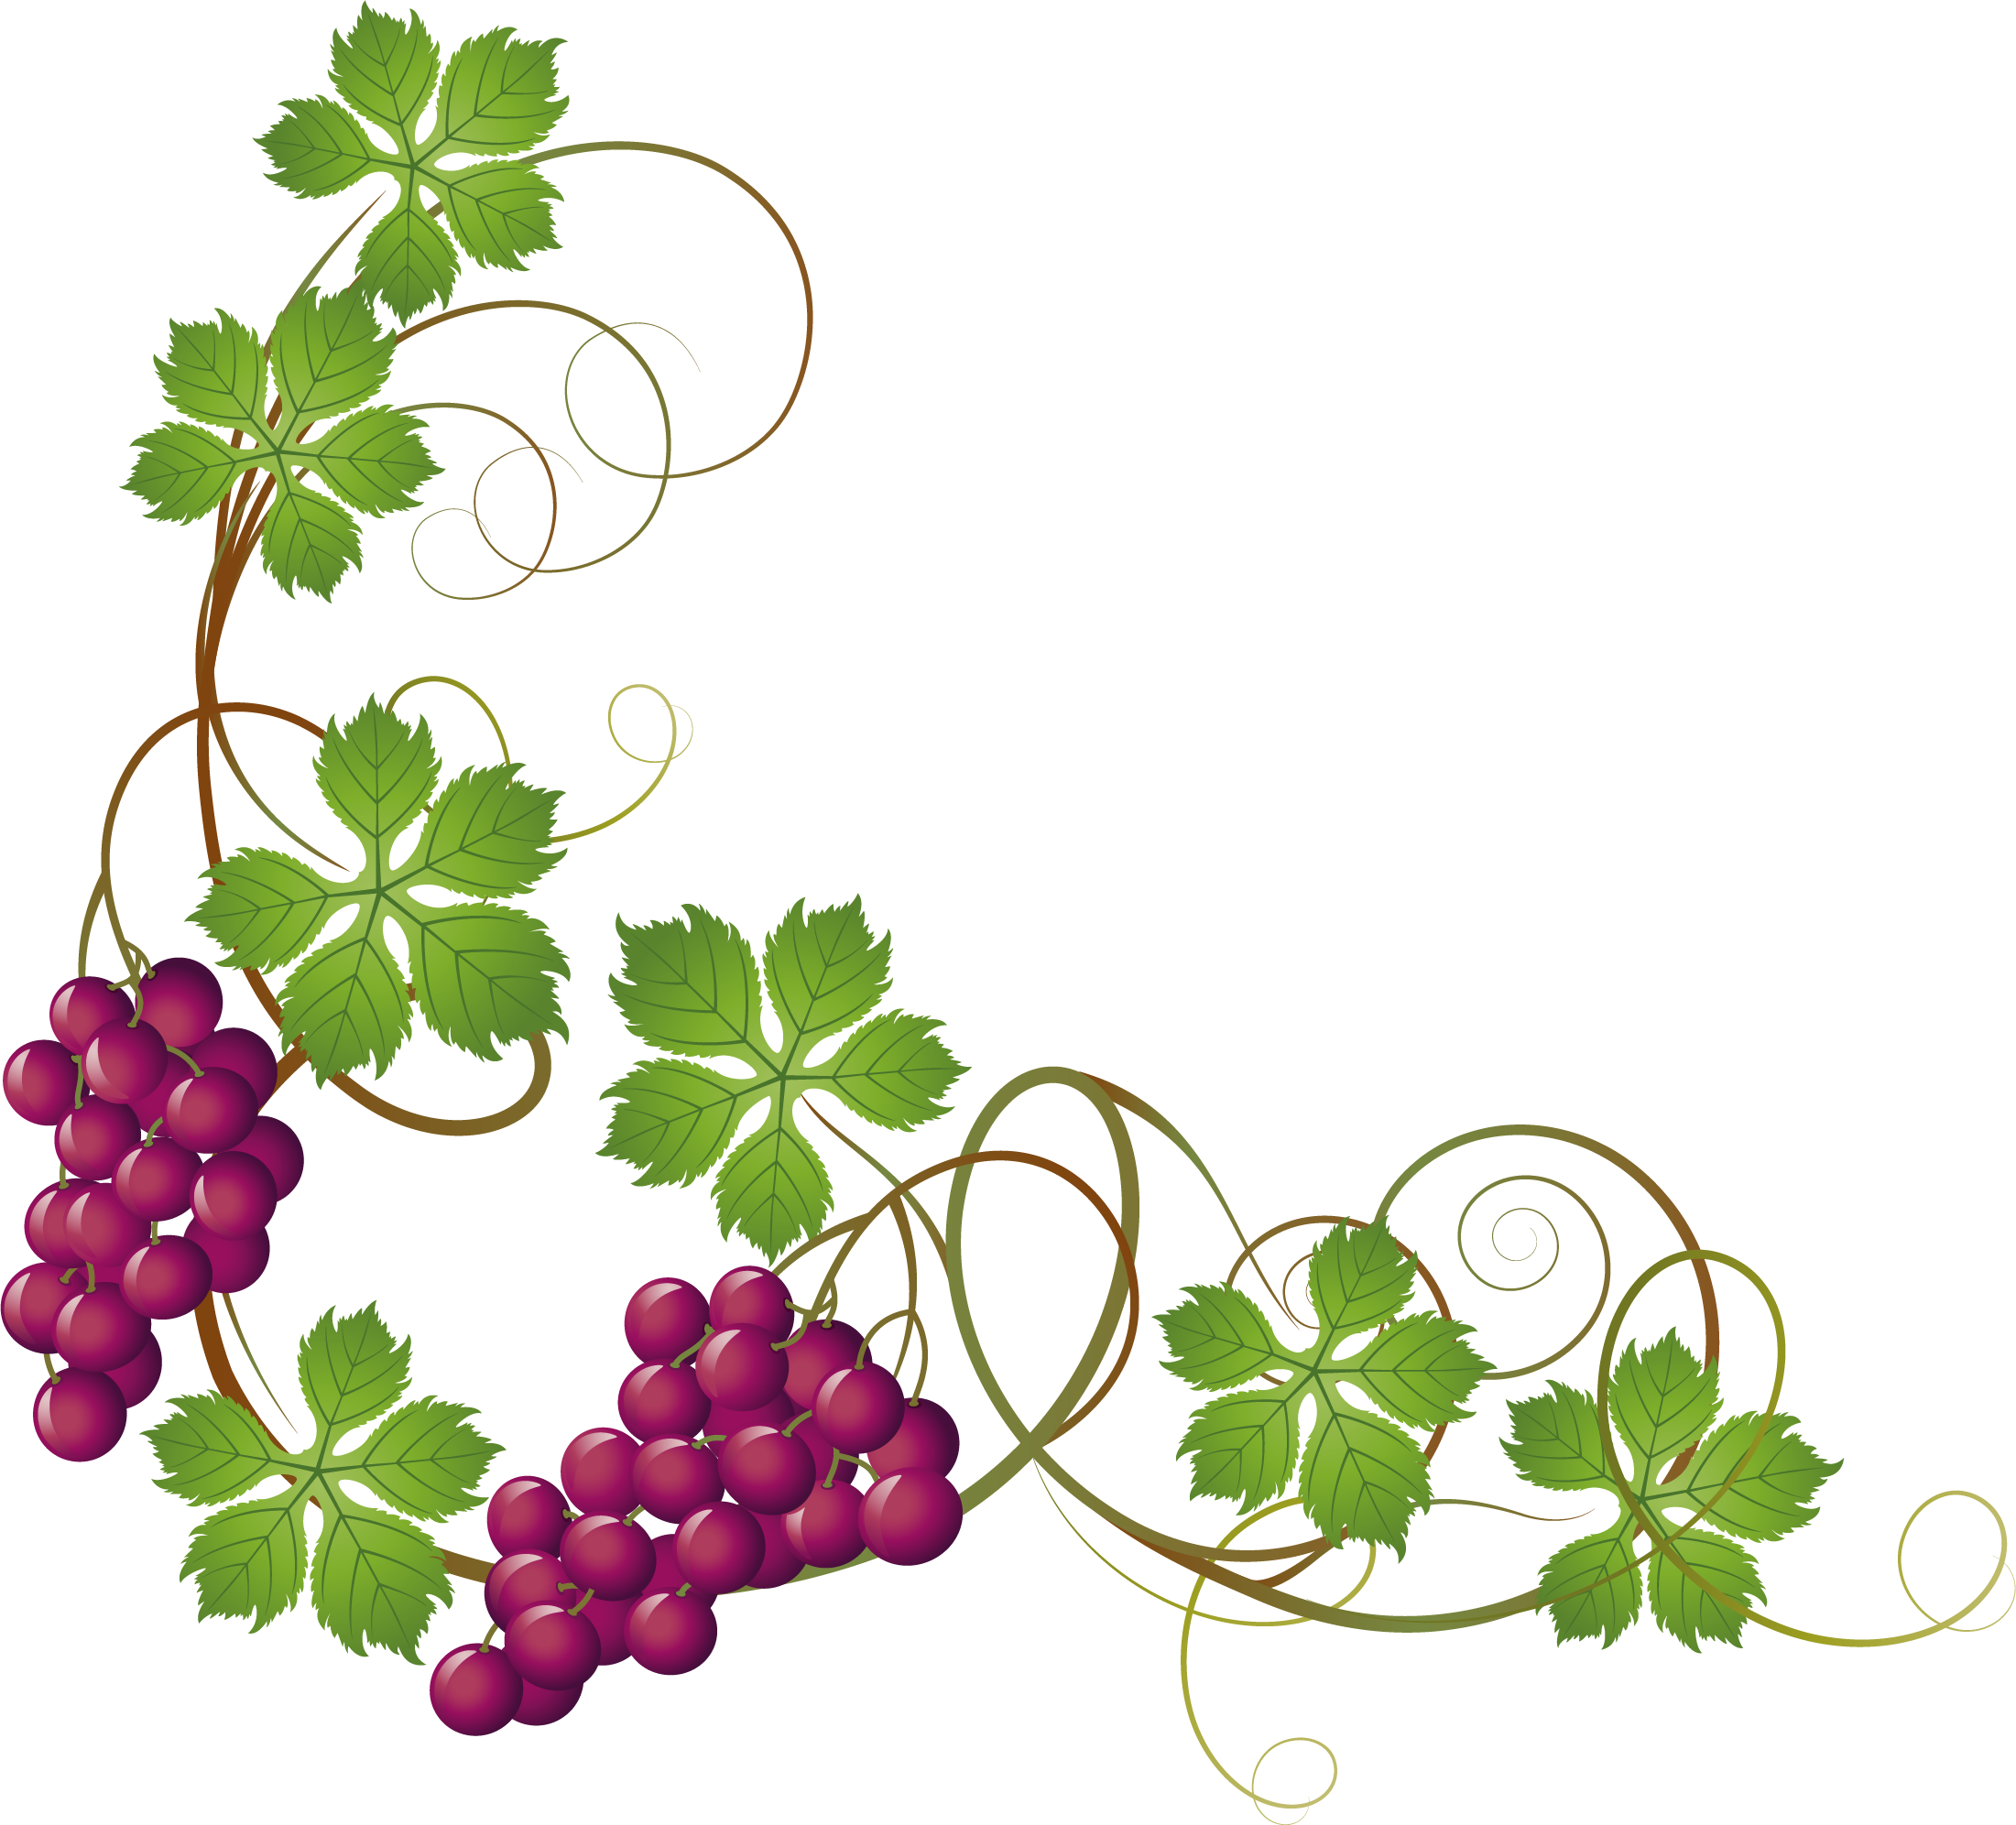 Grape vine at getdrawings. Vines clipart purple flower